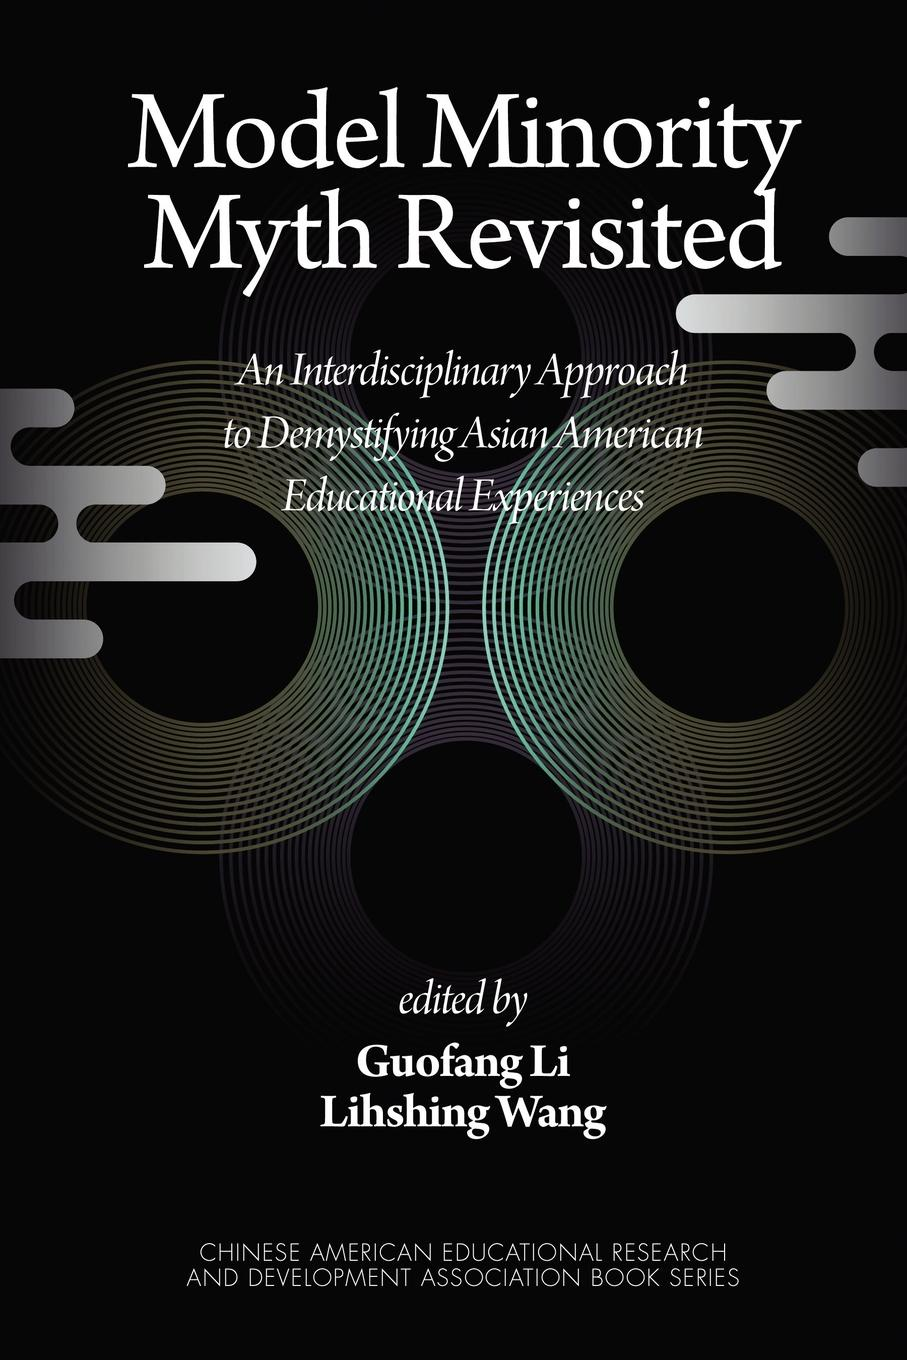 Model Minority Myth Revisited. An Interdisciplinary Approach to Demystifying Asian American Educational Experiences (PB) the eye of the world the wheel of time book 2 chinese edition 400 page